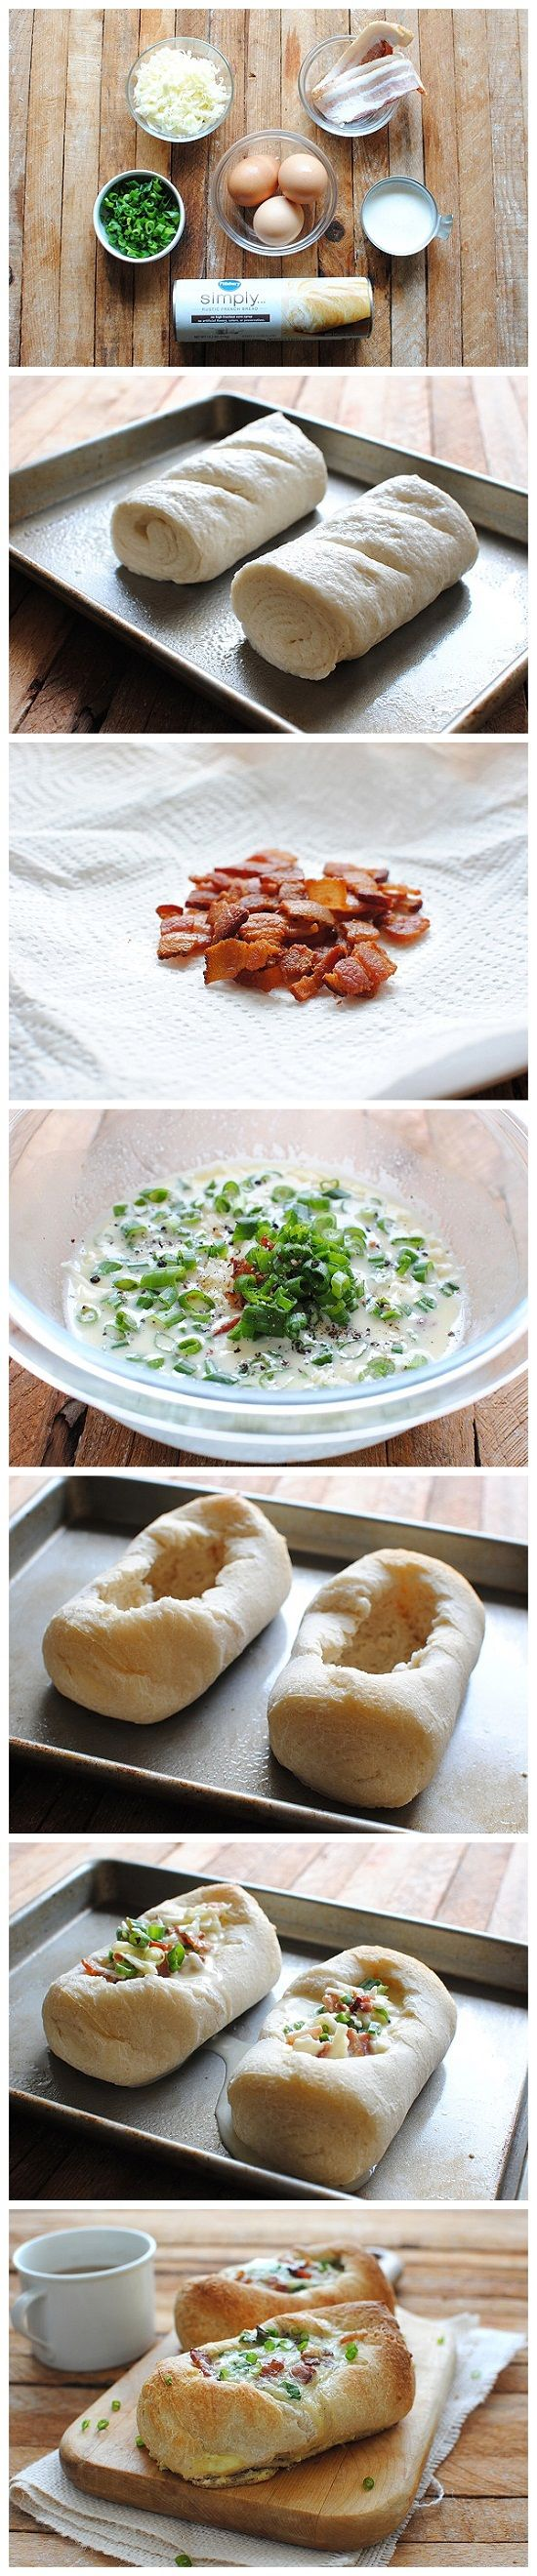 Baked Egg Boats - in the Dutch Oven or wrapped in foil on the grill.  Perfect camping food!